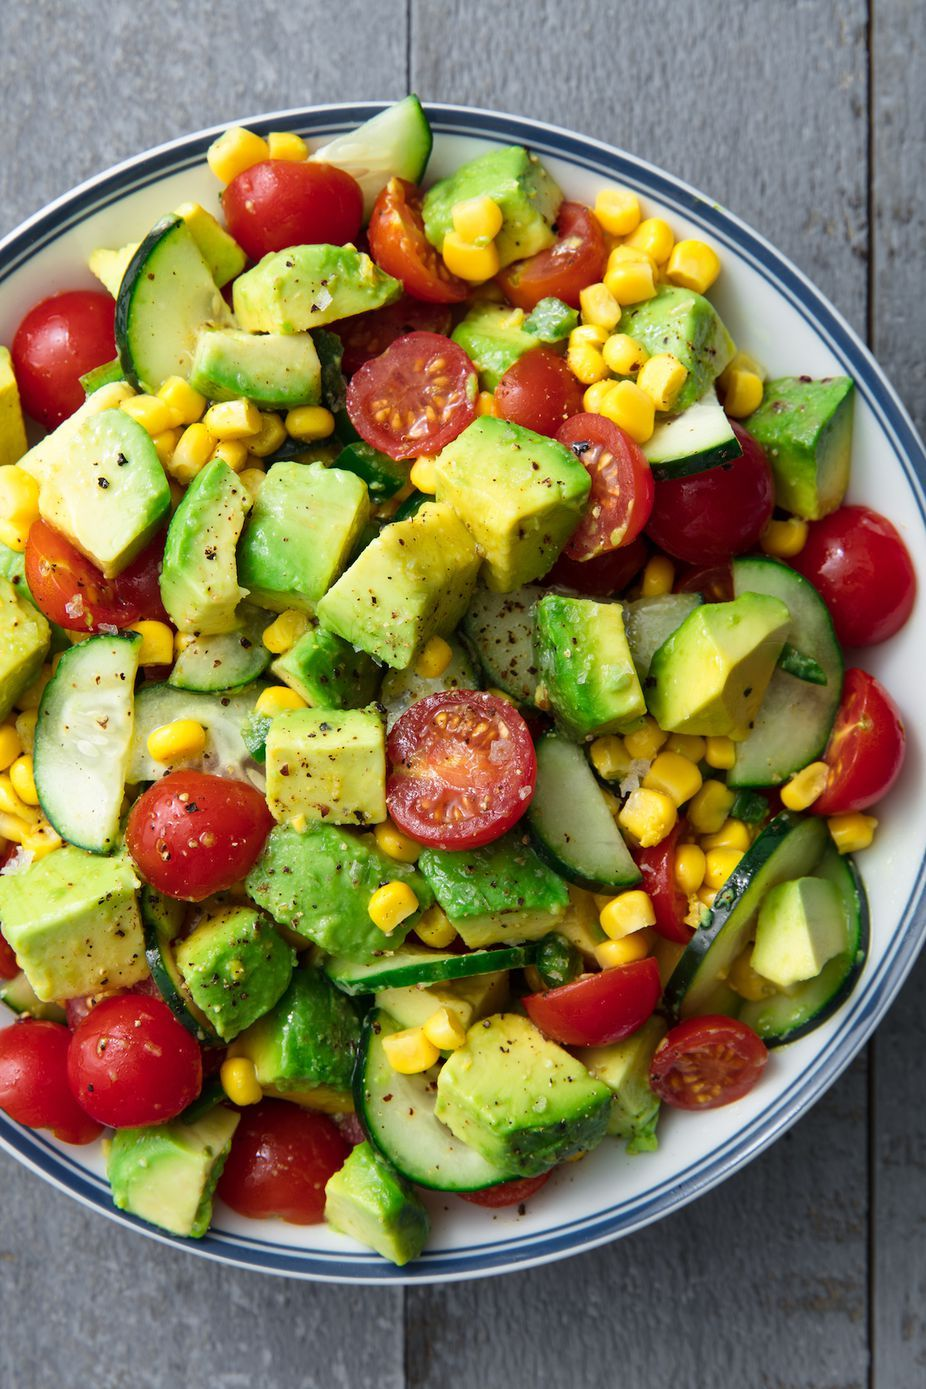 50+ Next-Level Barbecue Salads & Sides 70+ Easy BBQ Side Dishes and Salads - Recipes for Barbecue Sides—